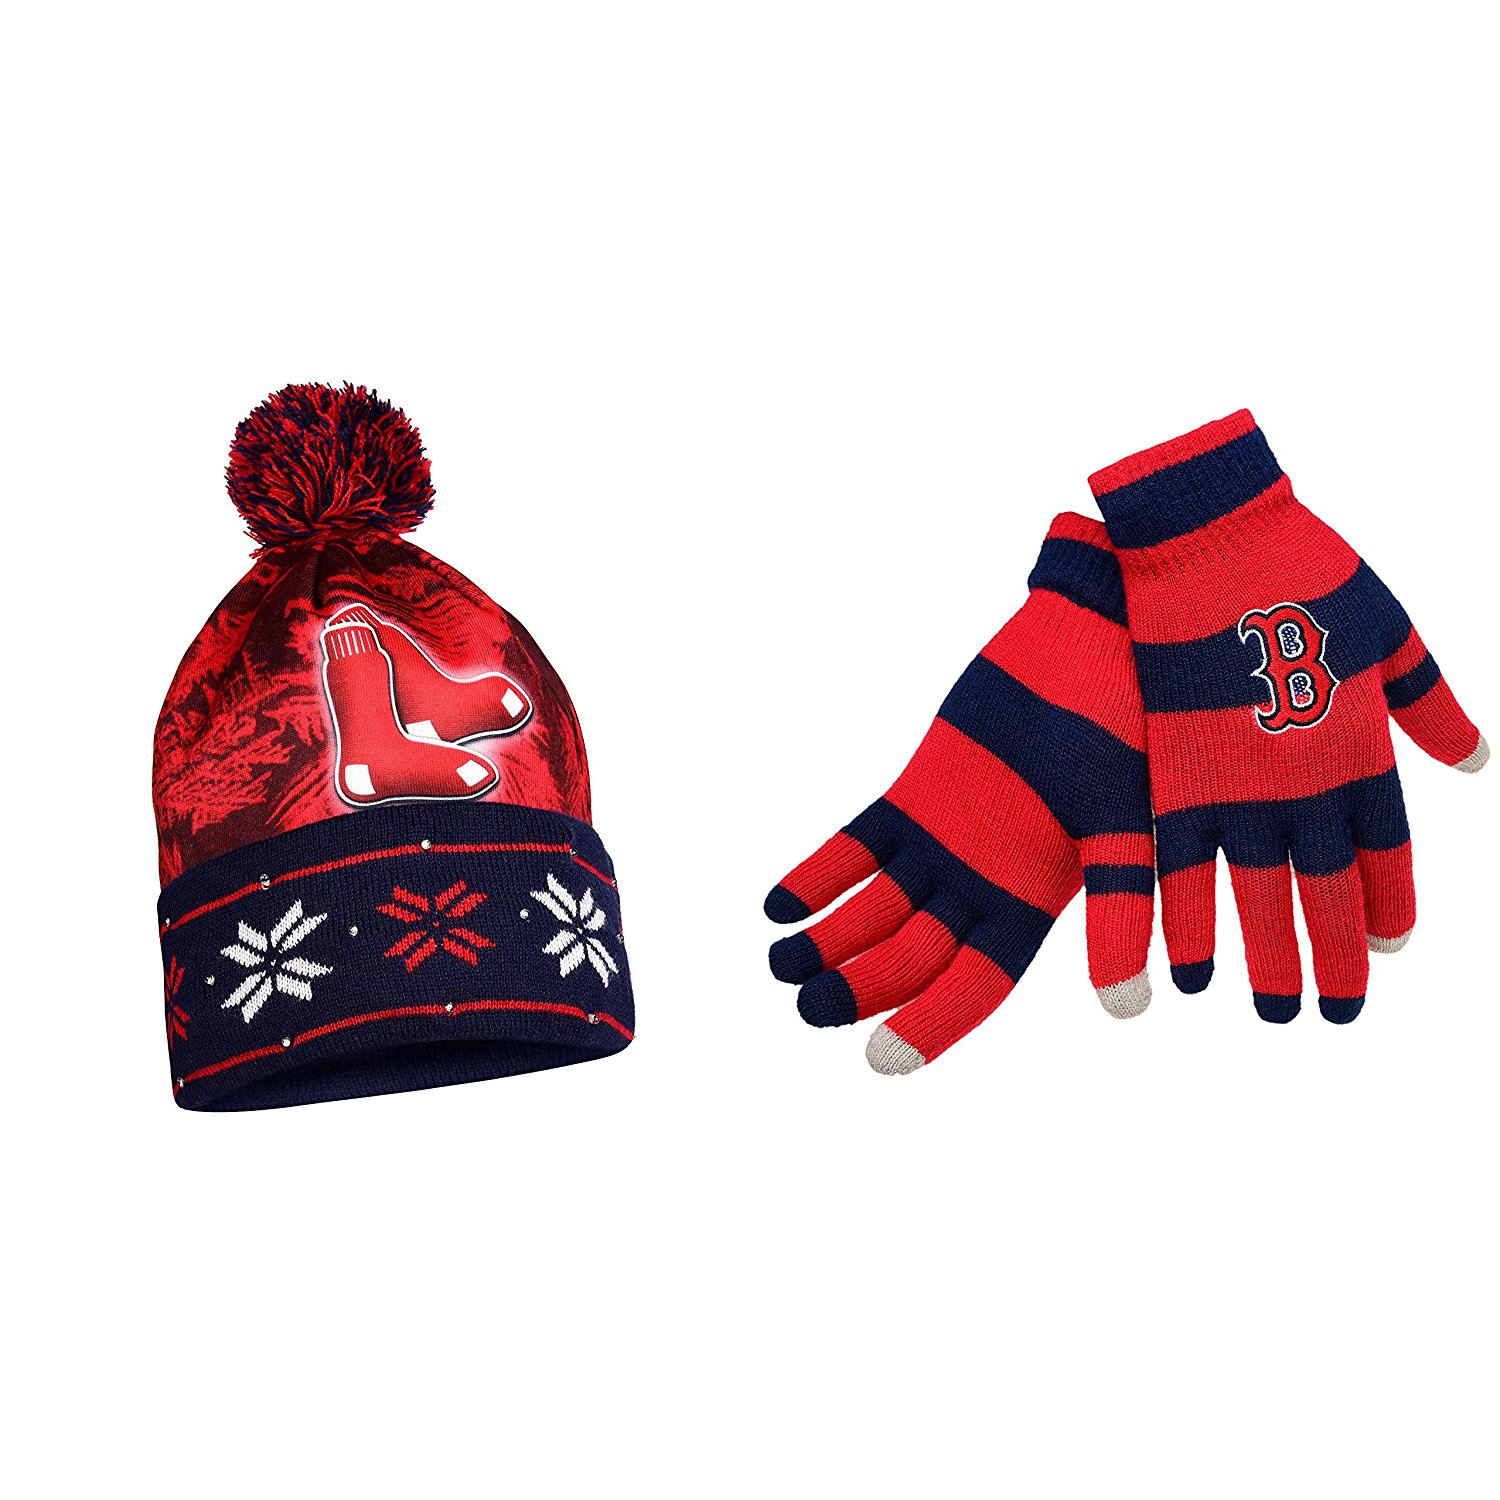 11a6827104a Get Quotations · MLB Boston Red Sox Glove Stripe Knit And Big Logo Beanie 2  Pack Bundle